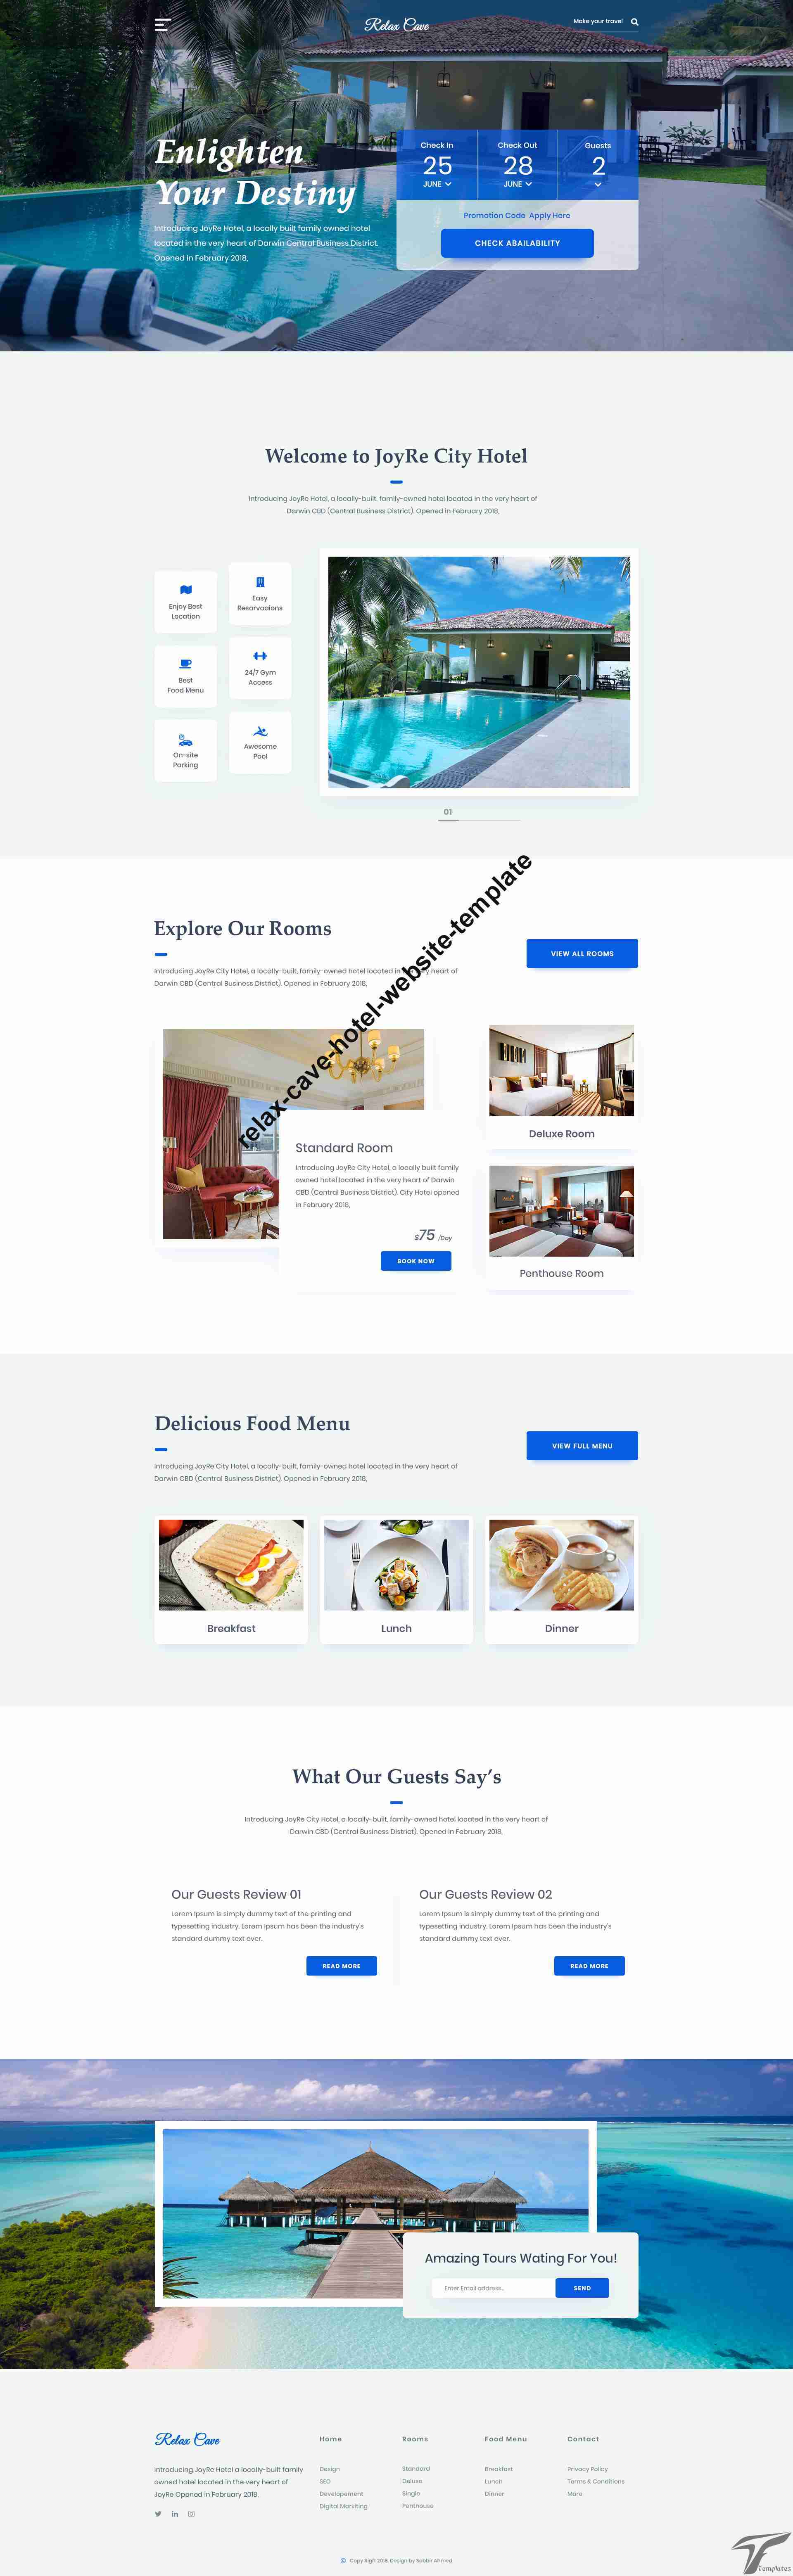 https://images.besthemes.com/images/h1_relax-cave-hotel-website-template3-_-249767402/02.-Preview-Image-03.png